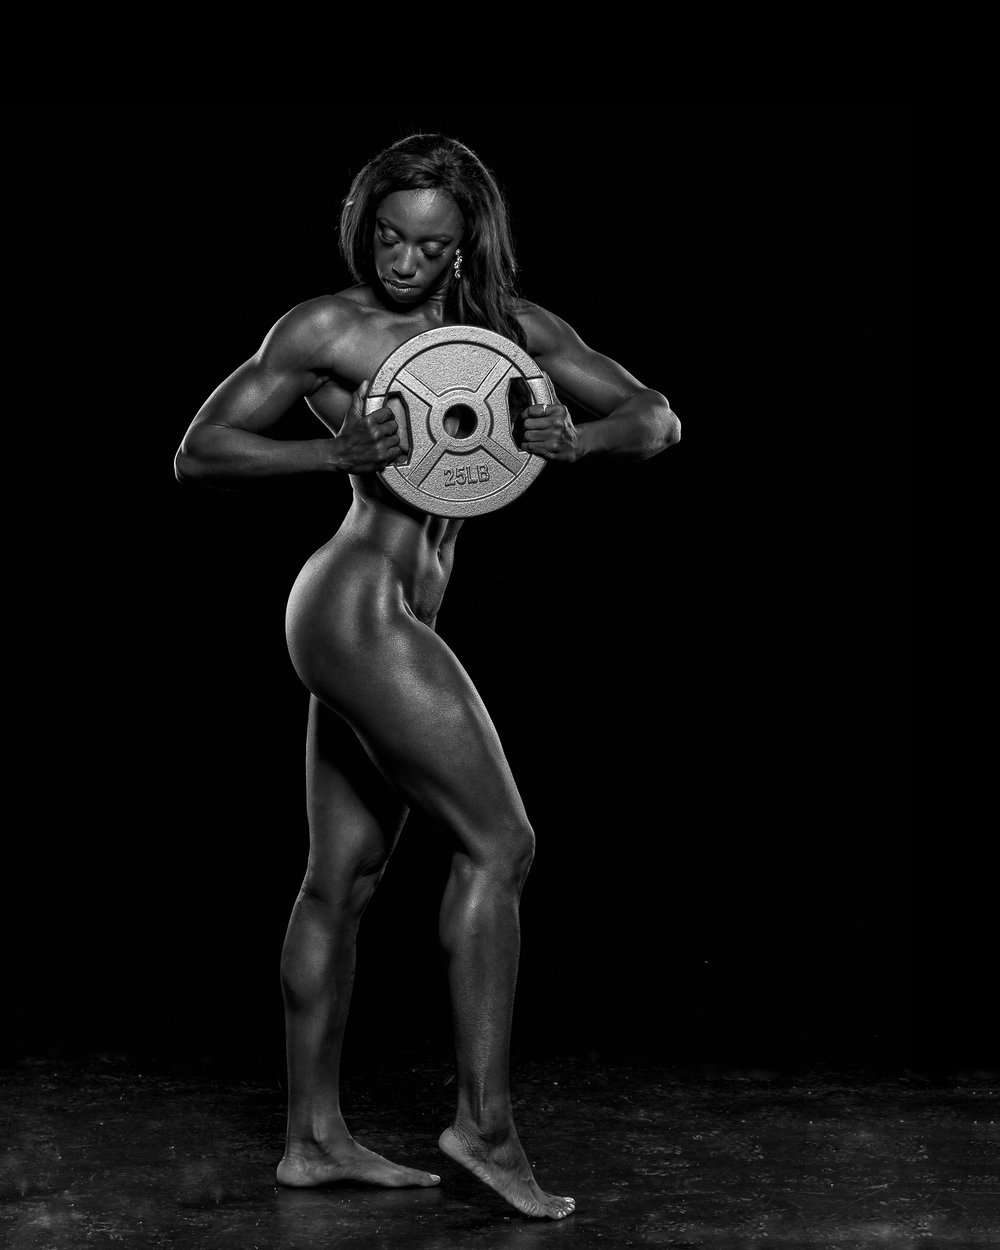 woman-bodybuilder-holding-weight-naked (1).jpg